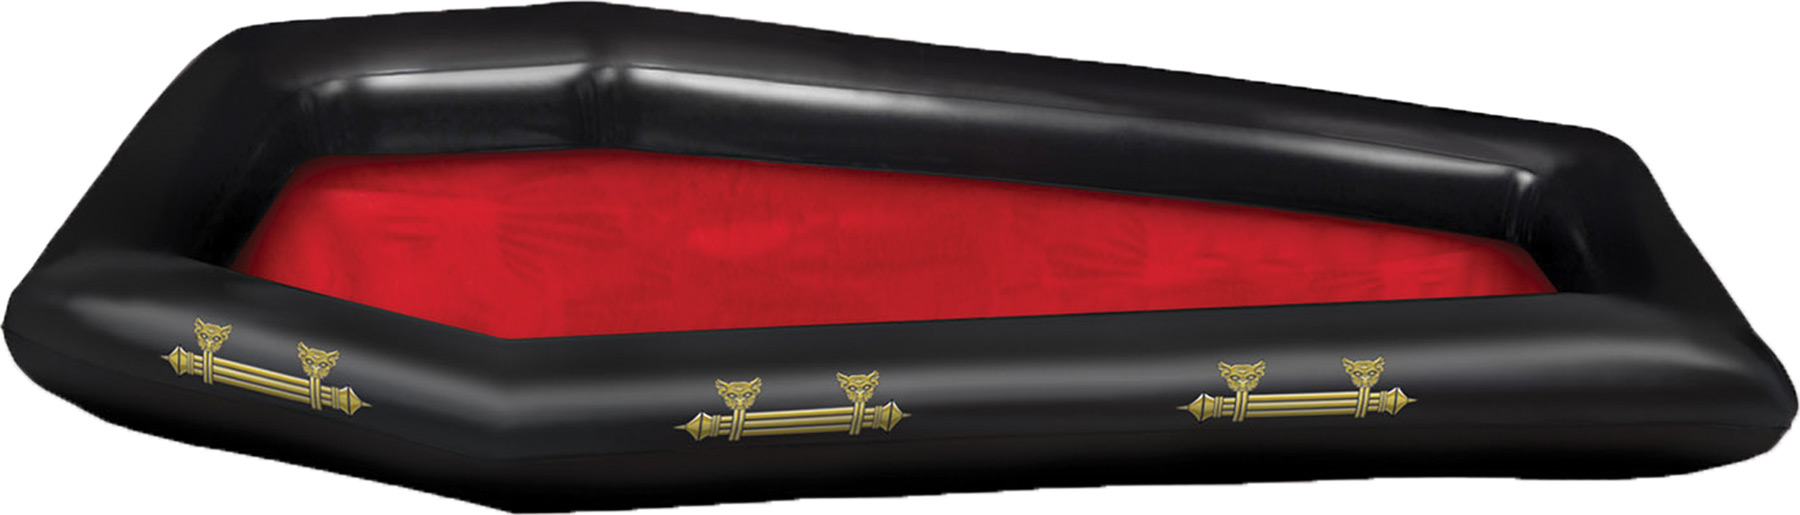 Featured Image for Coffin Buffet Cooler Inflatable